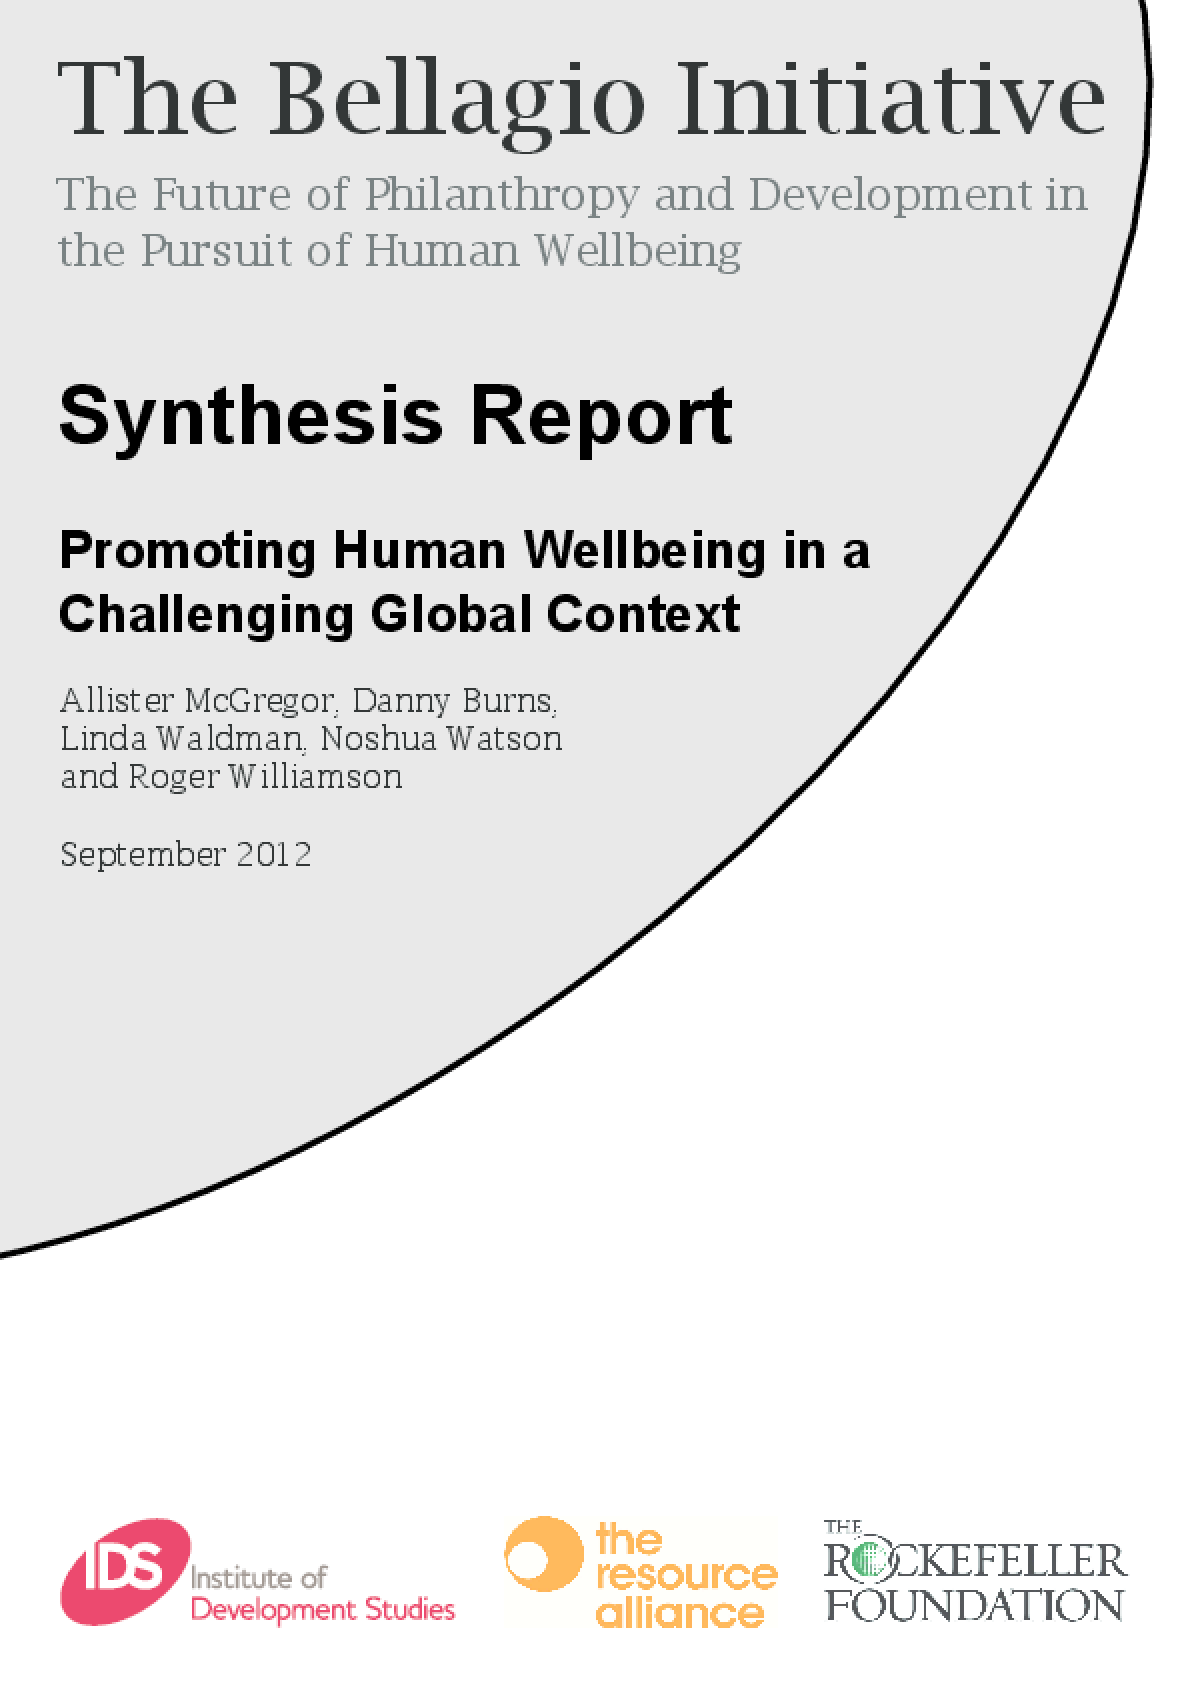 The Future of International Development and Philanthropy: Promoting Human Wellbeing in a Challenging Global Context